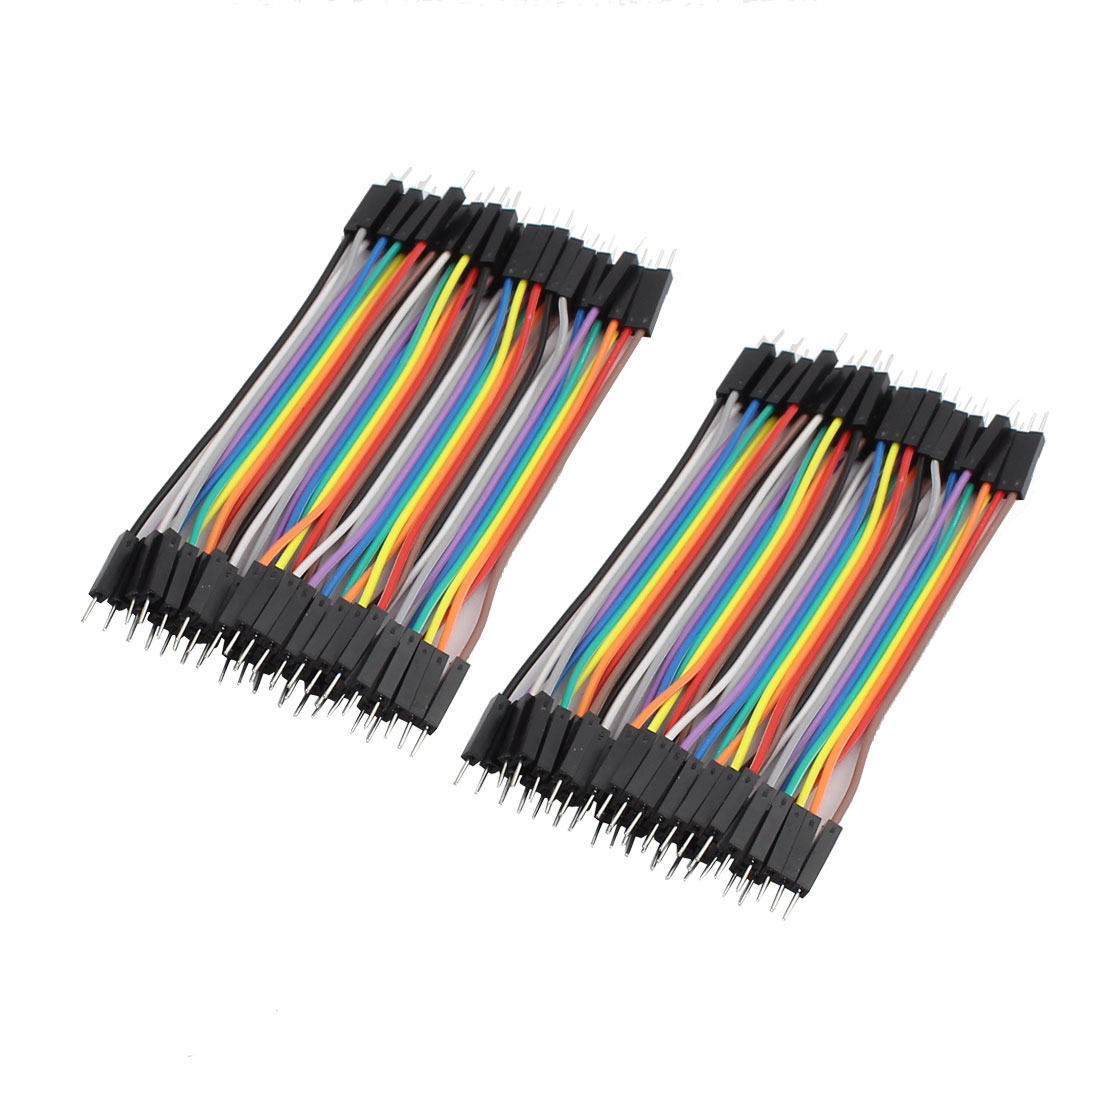 2Pcs Male to Male 44P Jumper Wires Ribbon Cables Pi Pic Breadboard DIY 10cm Long